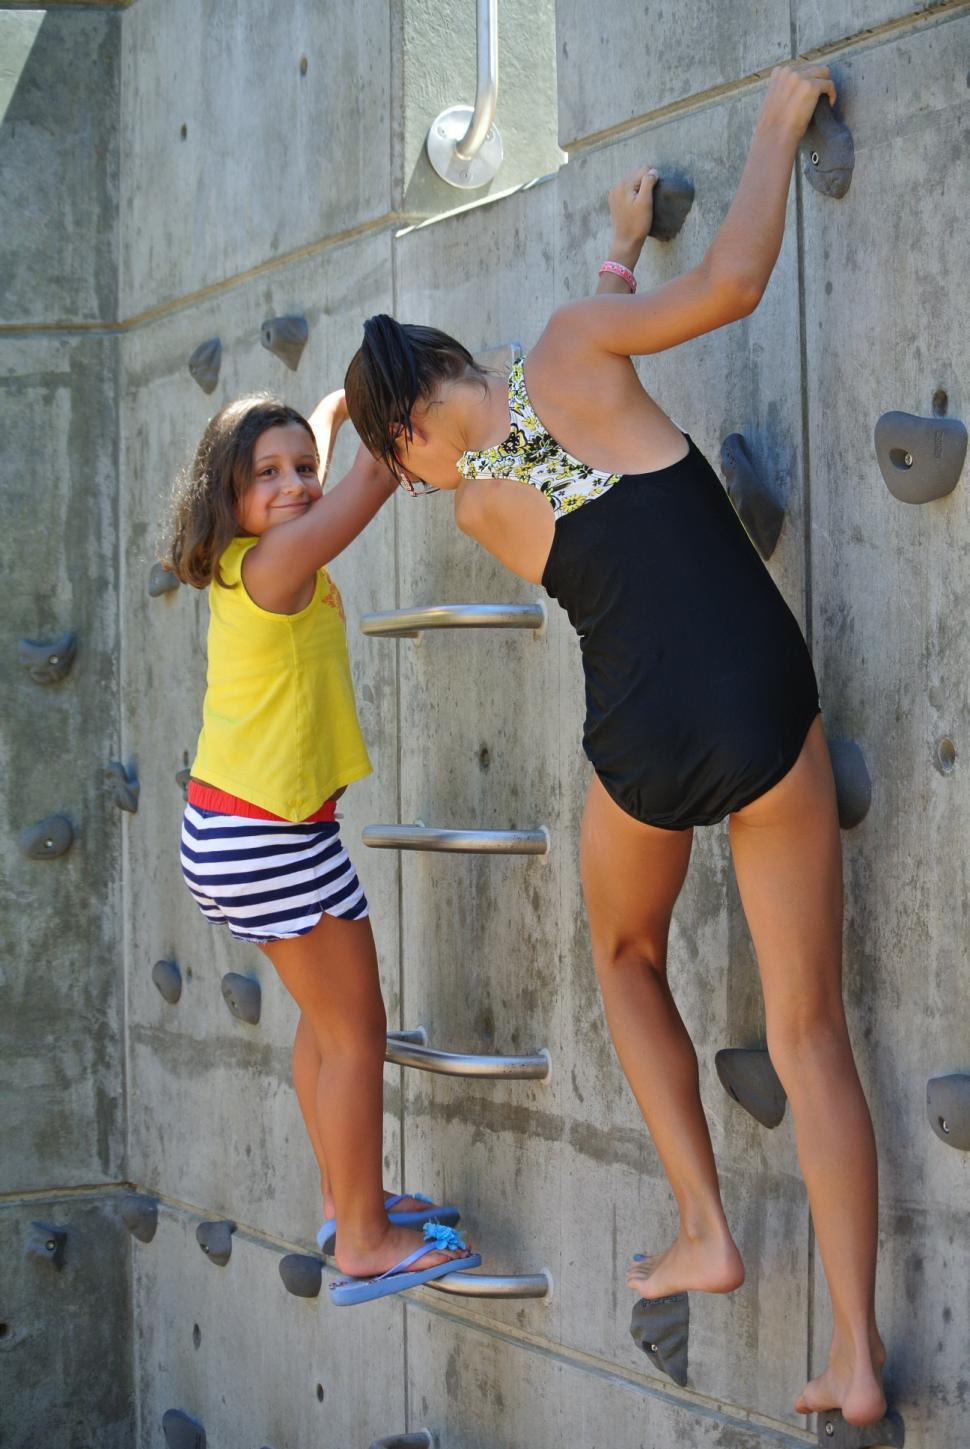 Climbing wall at Smale Riverfront Park (photo: Laura Hoevener)